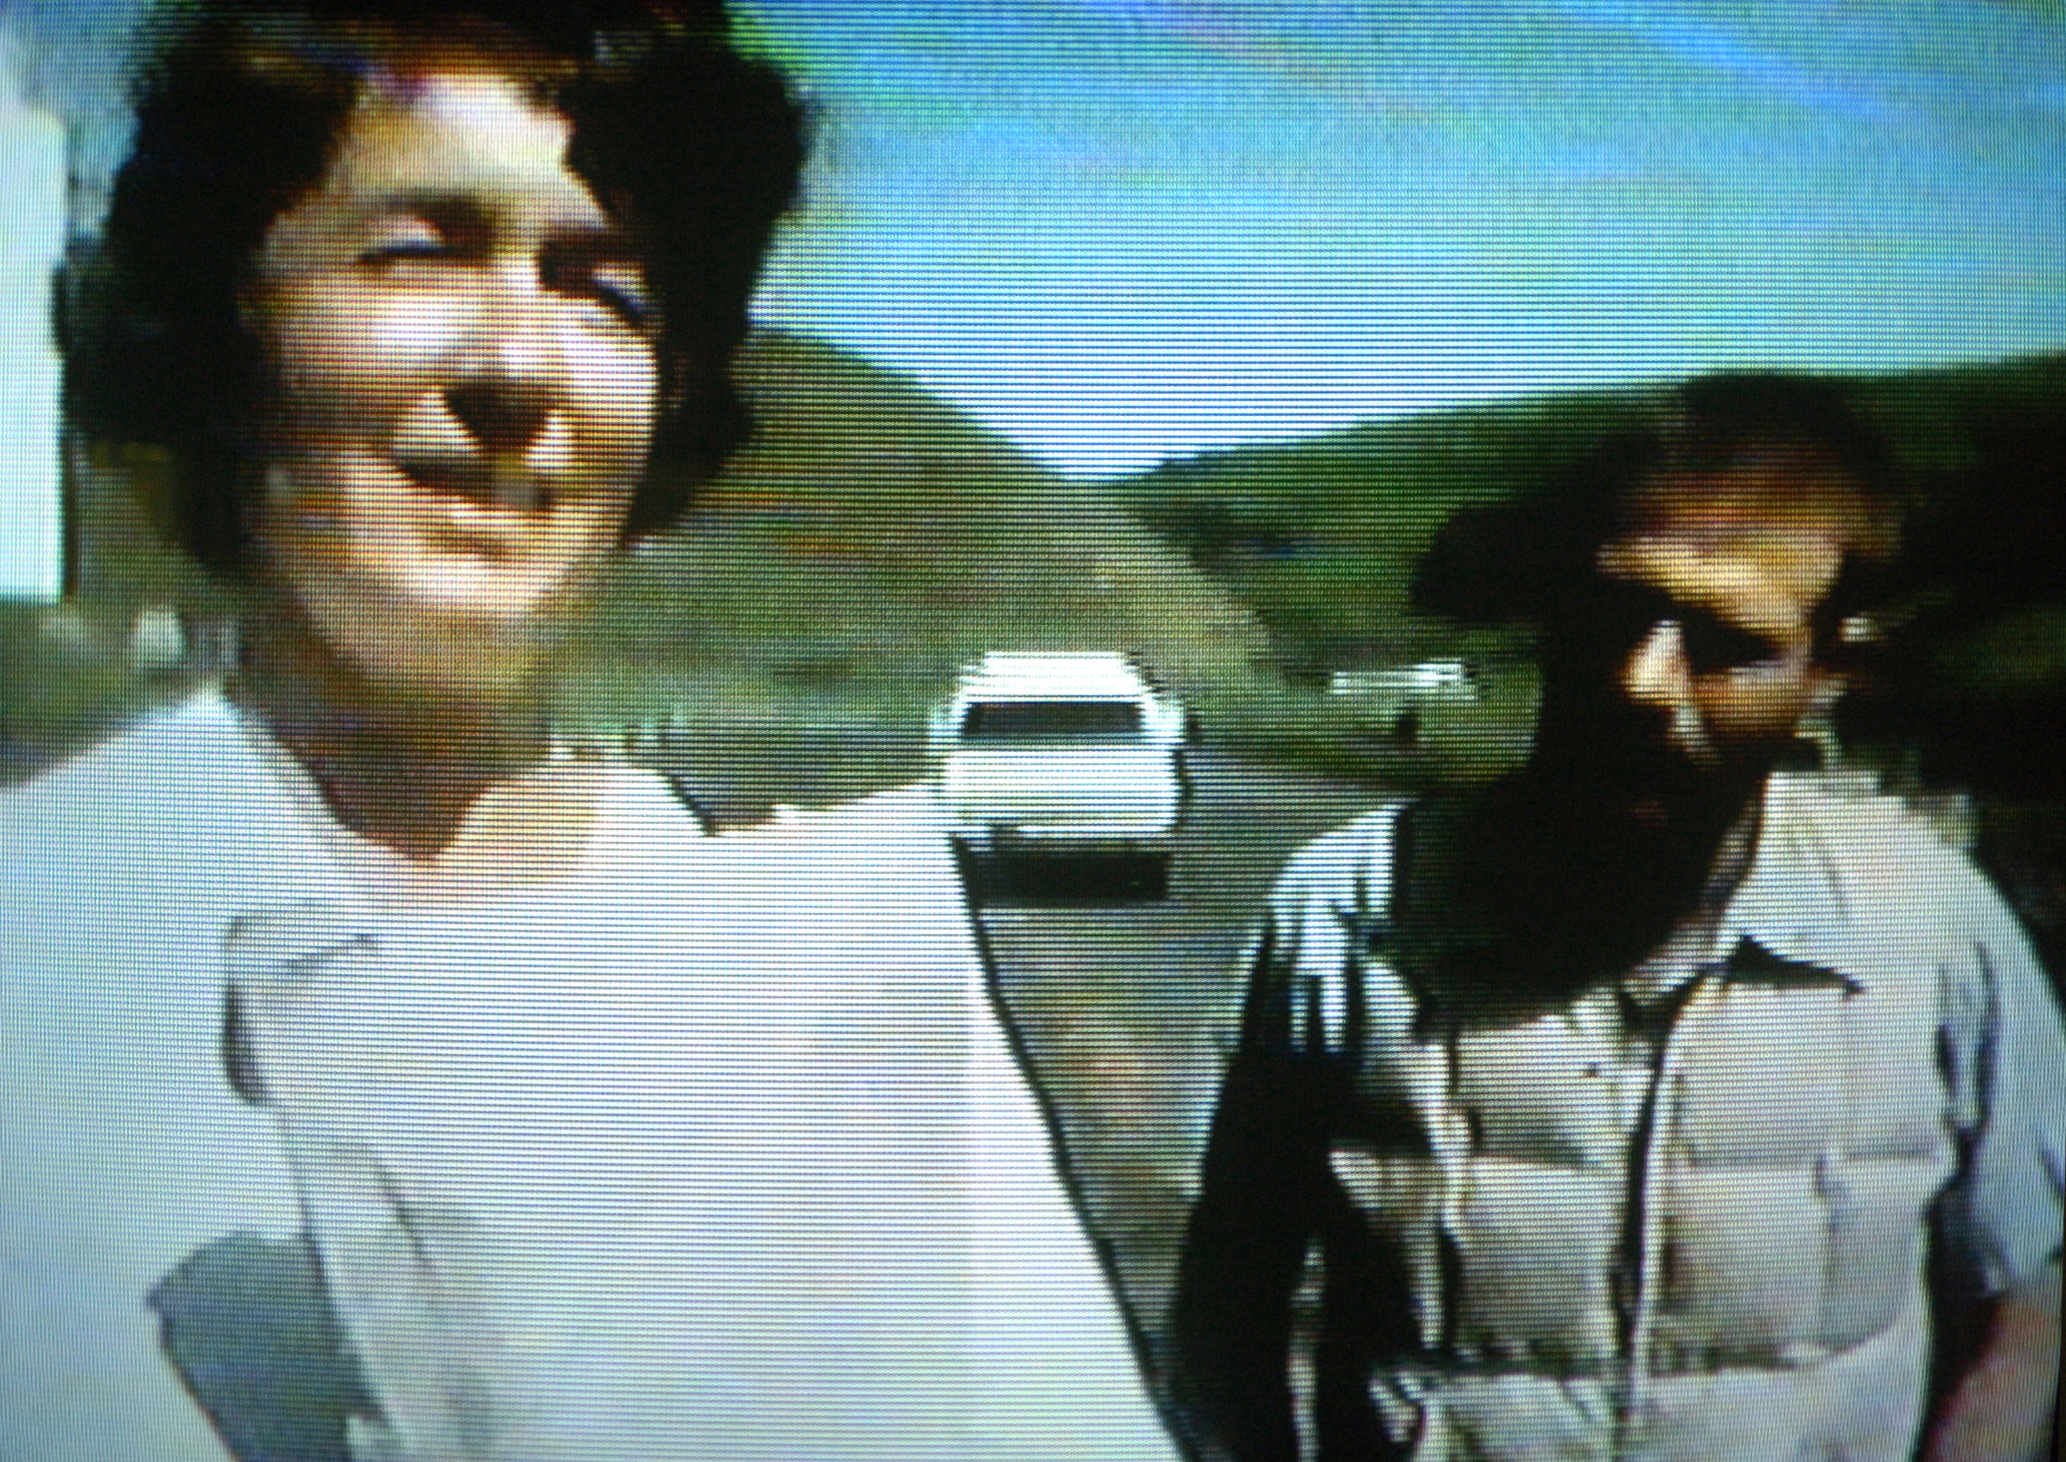 Former NBC investigative journalist Pat Lynch was undaunted by threats made against her in May 1978,while filming Synanon cult's property from a deserted public road in Marshall, California. She and her crew were confronted by armed men and women who held the journalists captive at gunpoint for three hours.